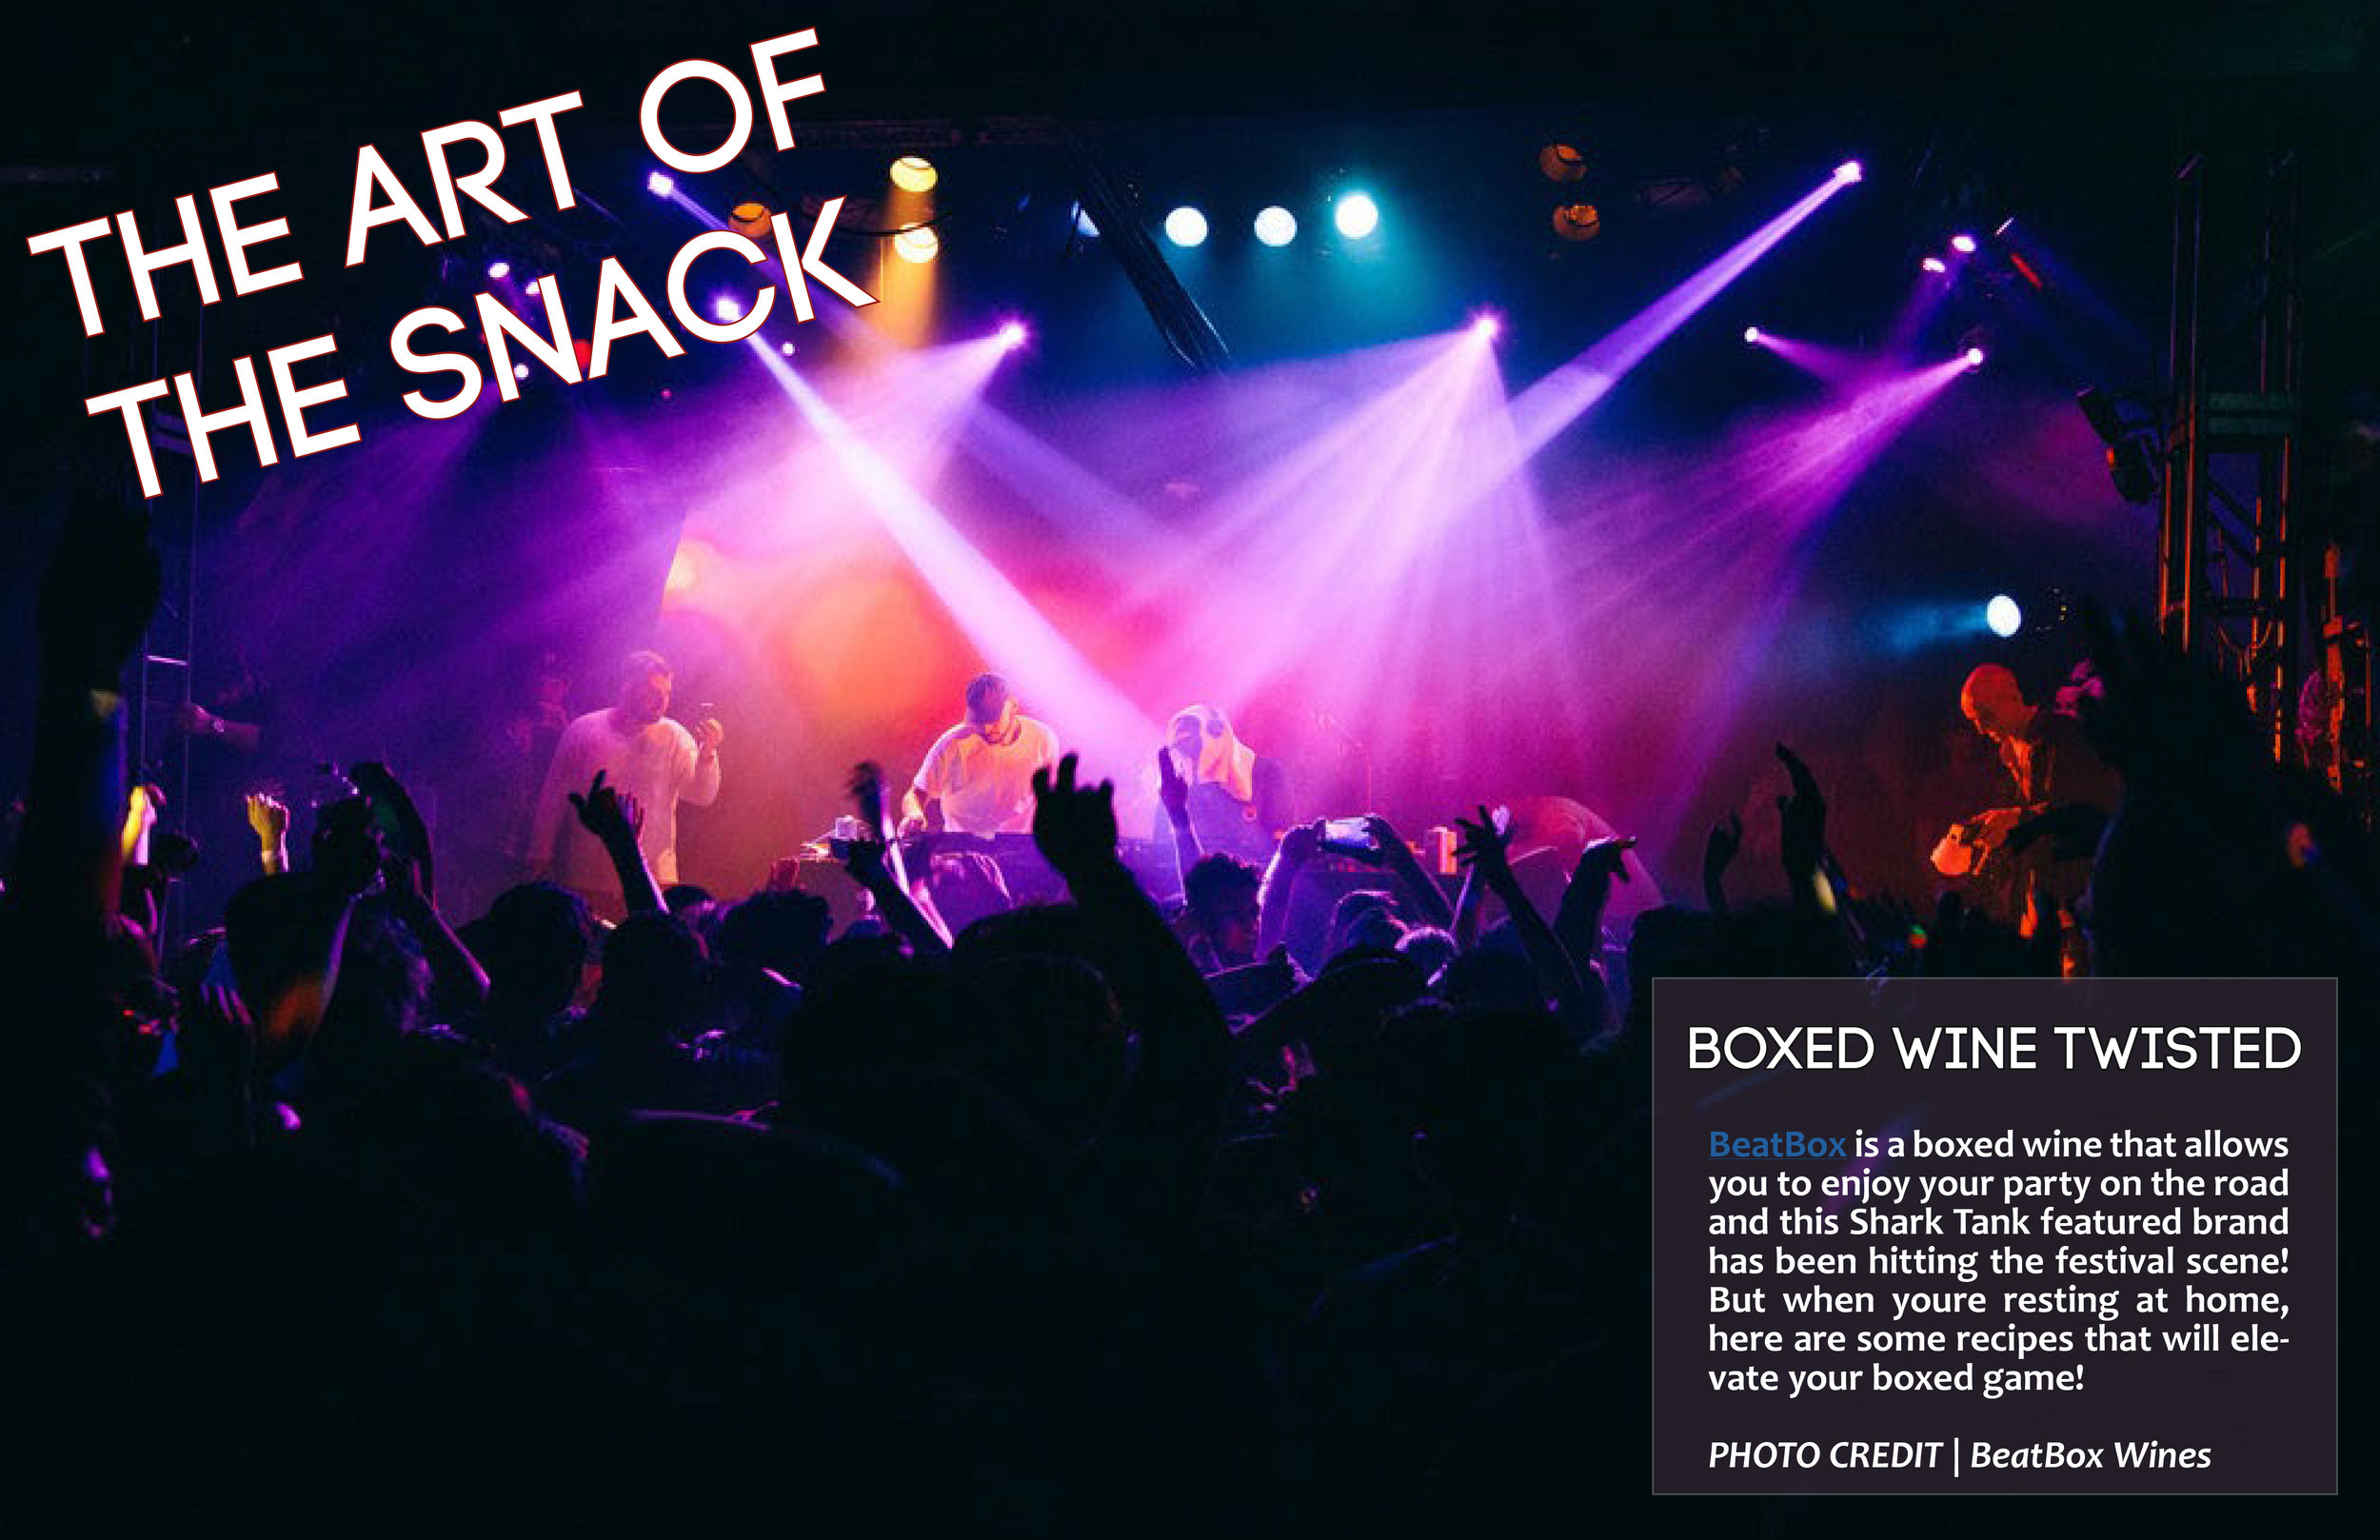 AM DEC THE ART OF THE SNACK-1.jpg